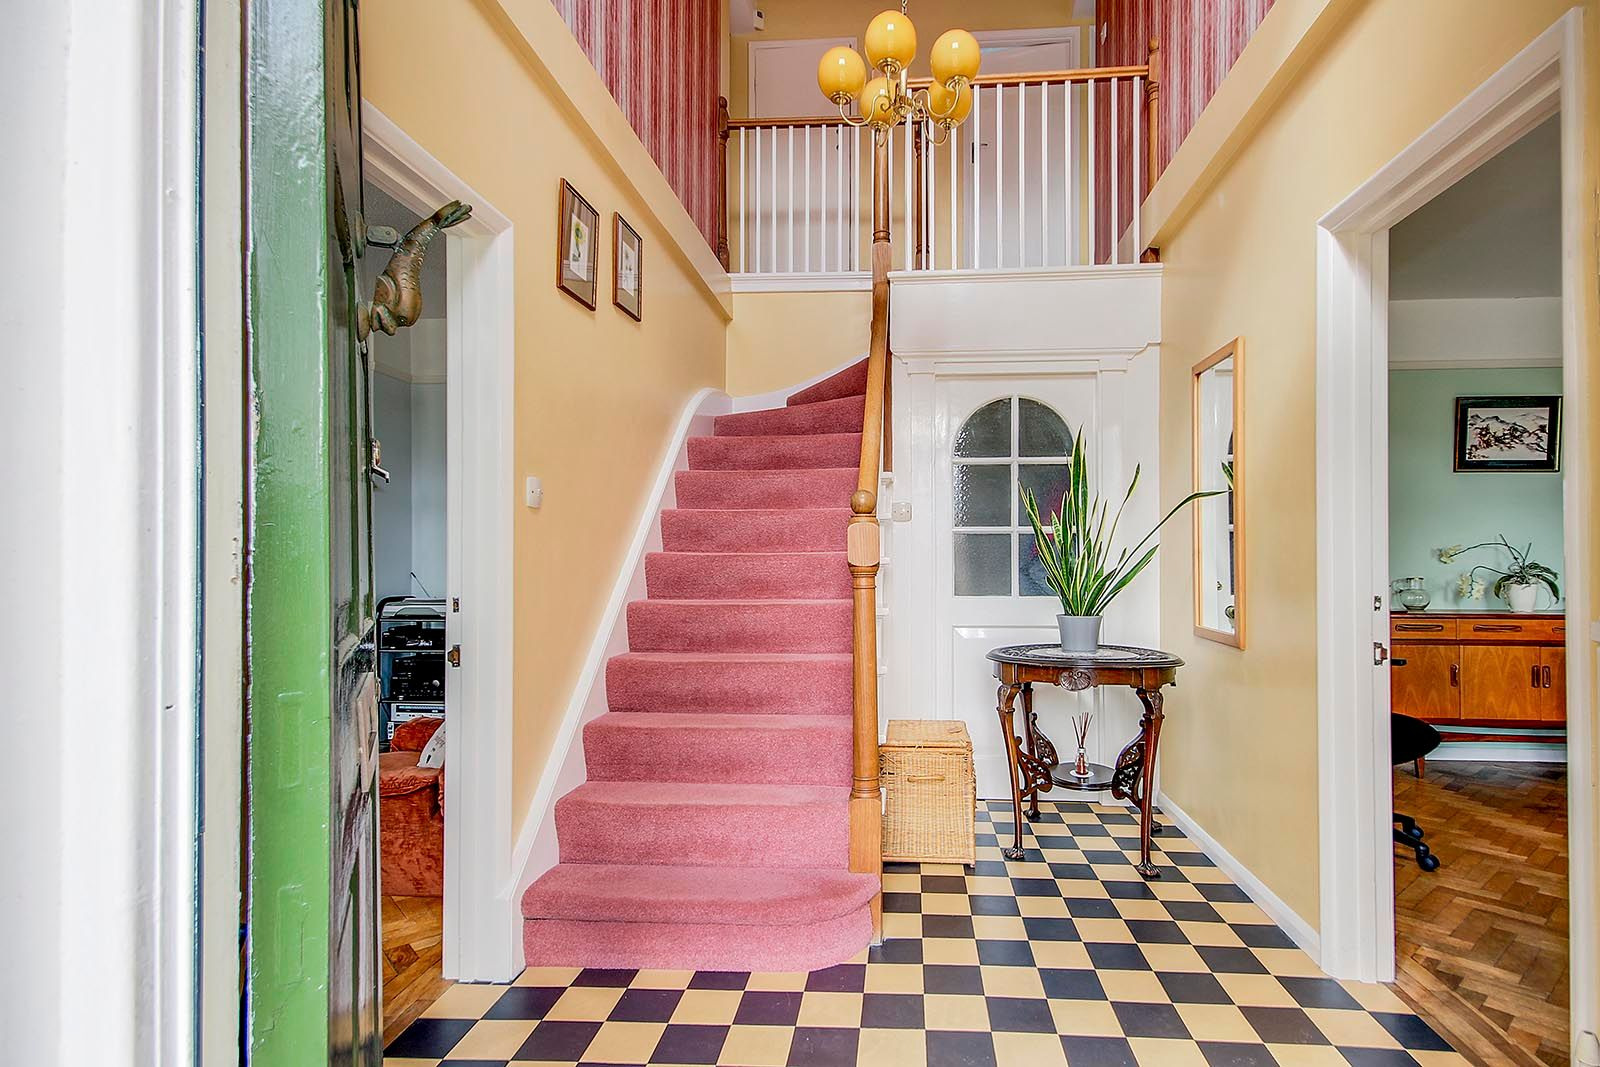 4 bed house for sale in Mill Road (COMP AUG 19) 4